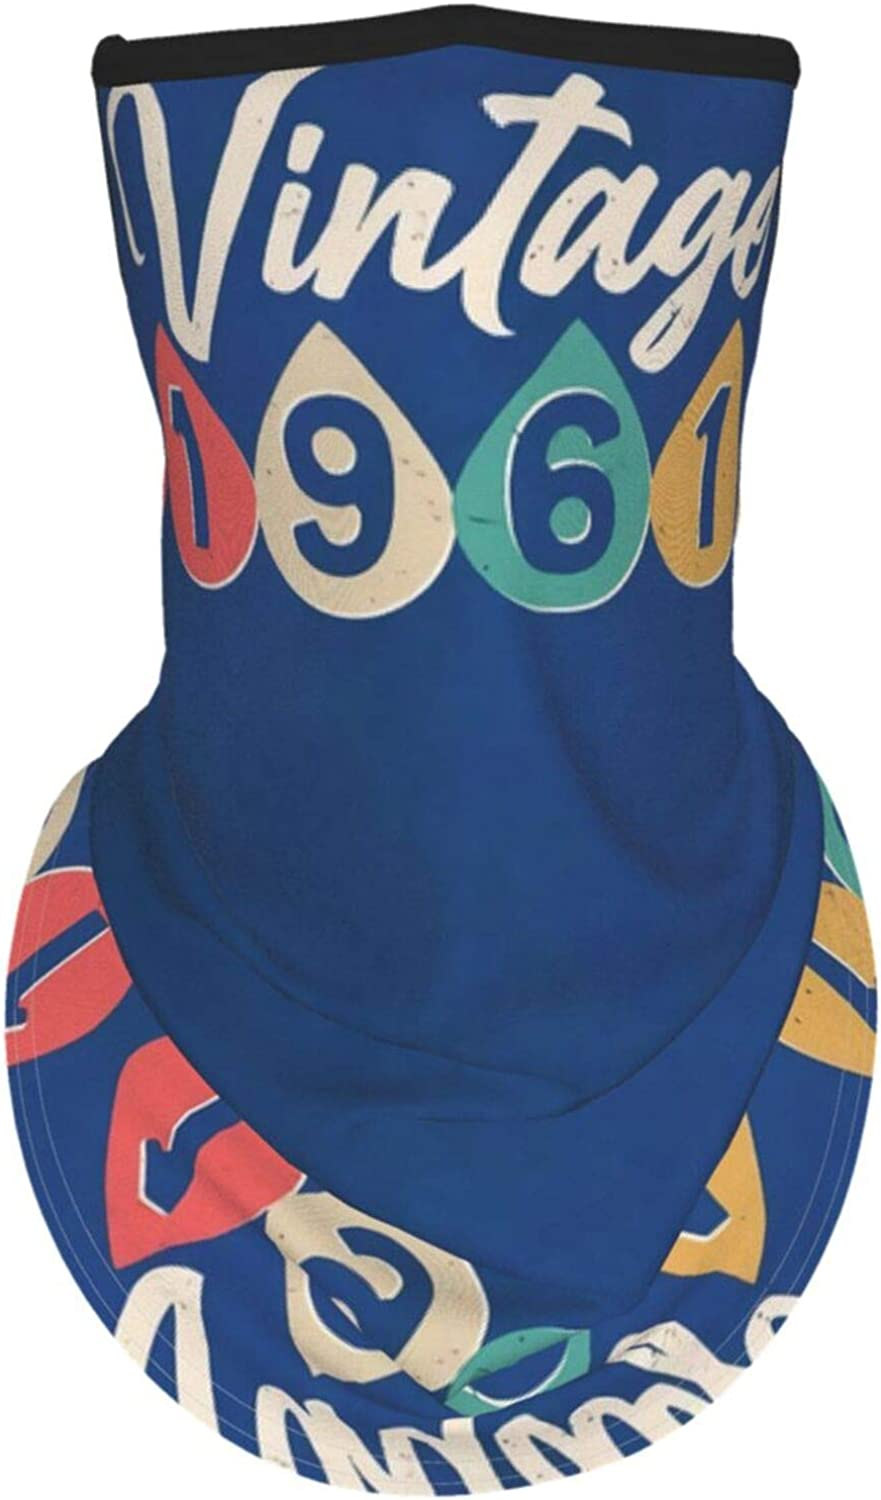 Ear Hangers Face Balaclava Vintage 1961 Design 60th Birthday Blue Protective Cover Wristband Bandanas Neck Gaiter Dust-Proof,Anti-Pungent Gas,Washable